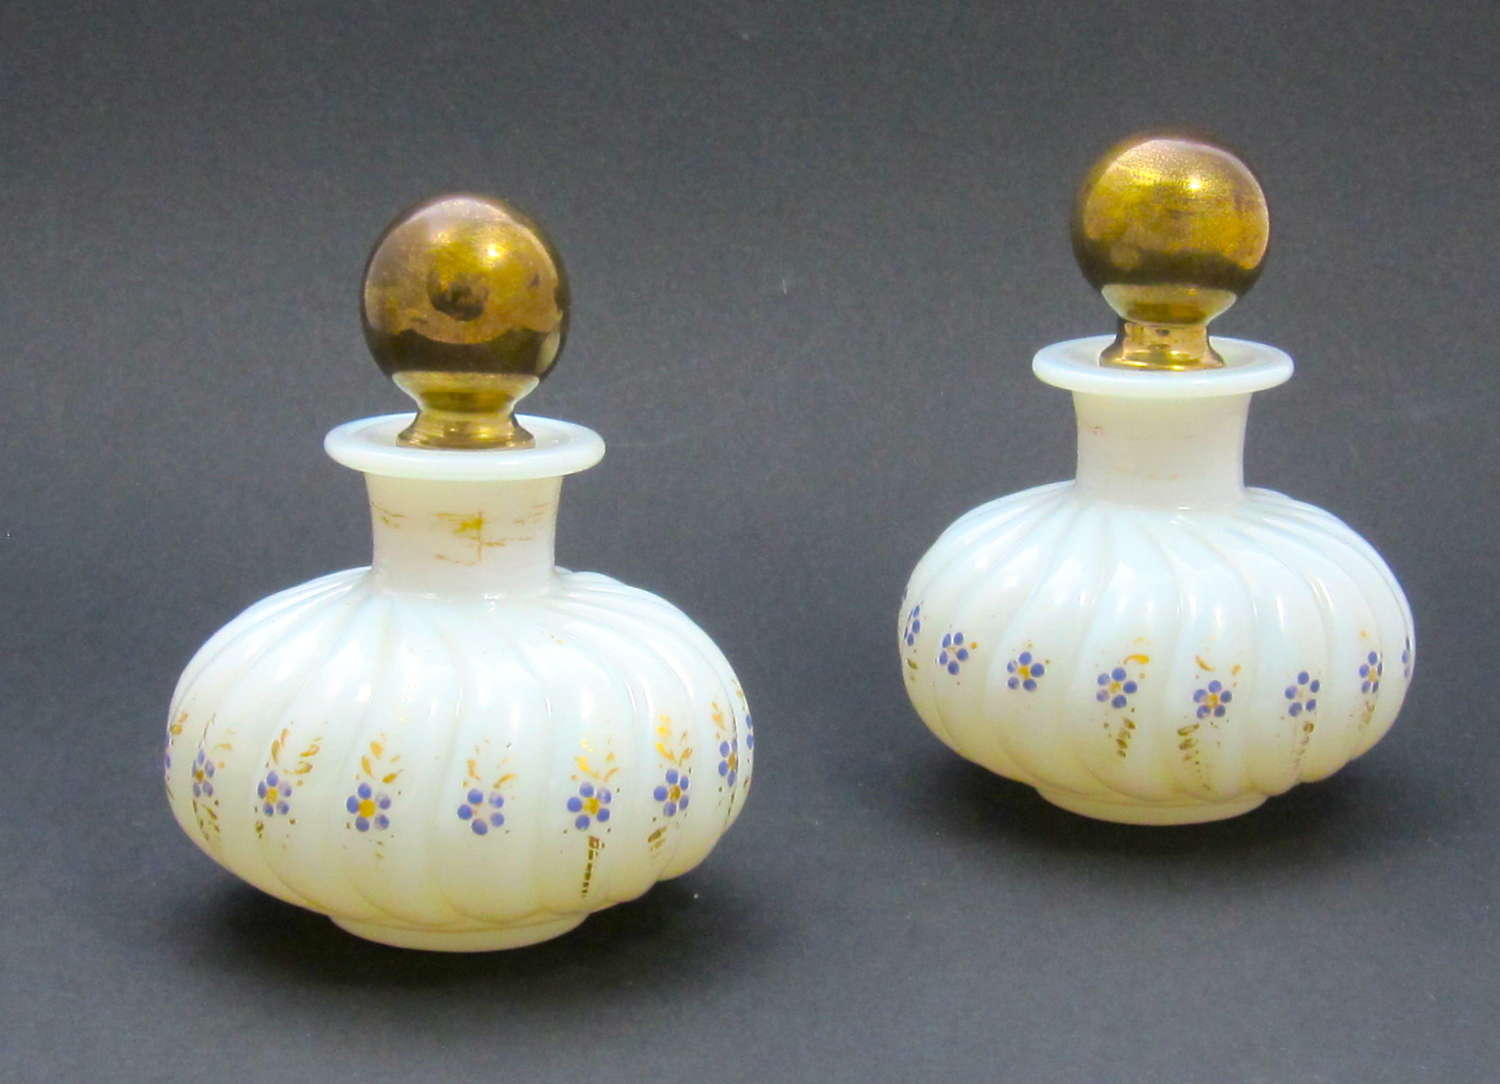 Pair of Antique Baccarat Opaline Perfume Bottles with Forget Me Knots